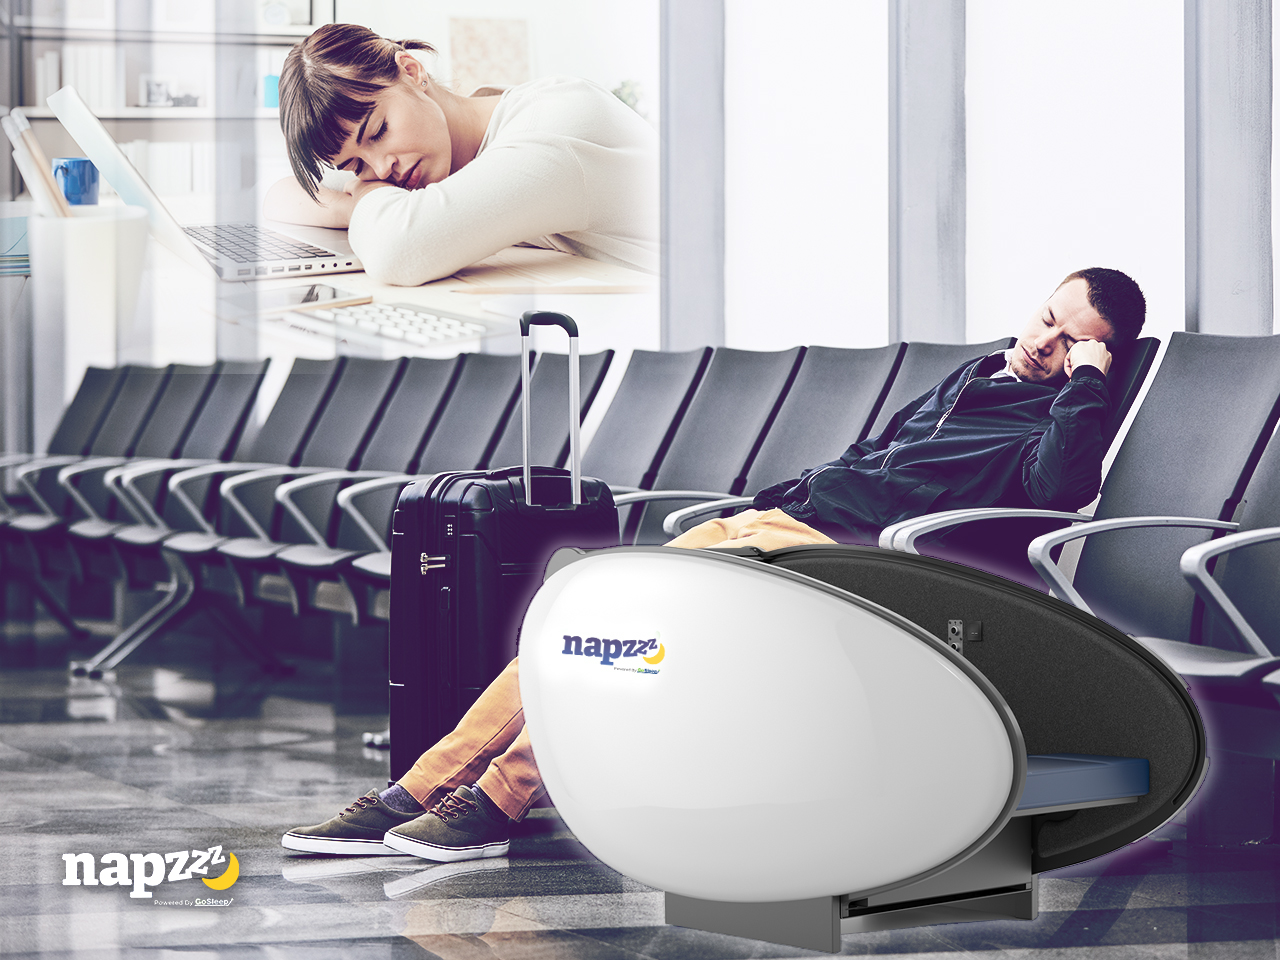 Napzzz Gives the World a Space to Power Nap Anywhere, Anytime with Napzzz Sleeping Pods